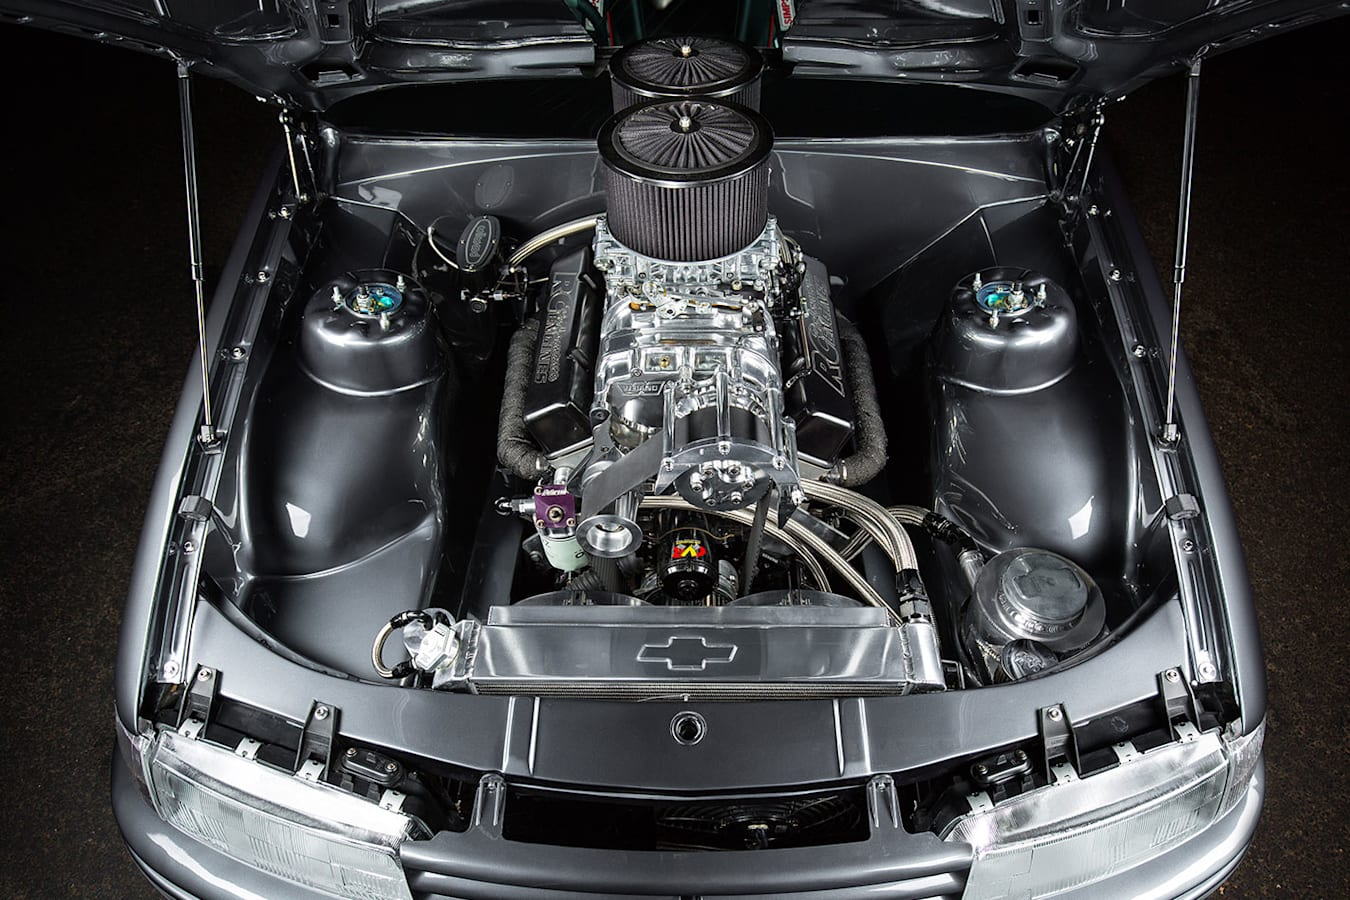 Holden Commodore VN SS engine bay